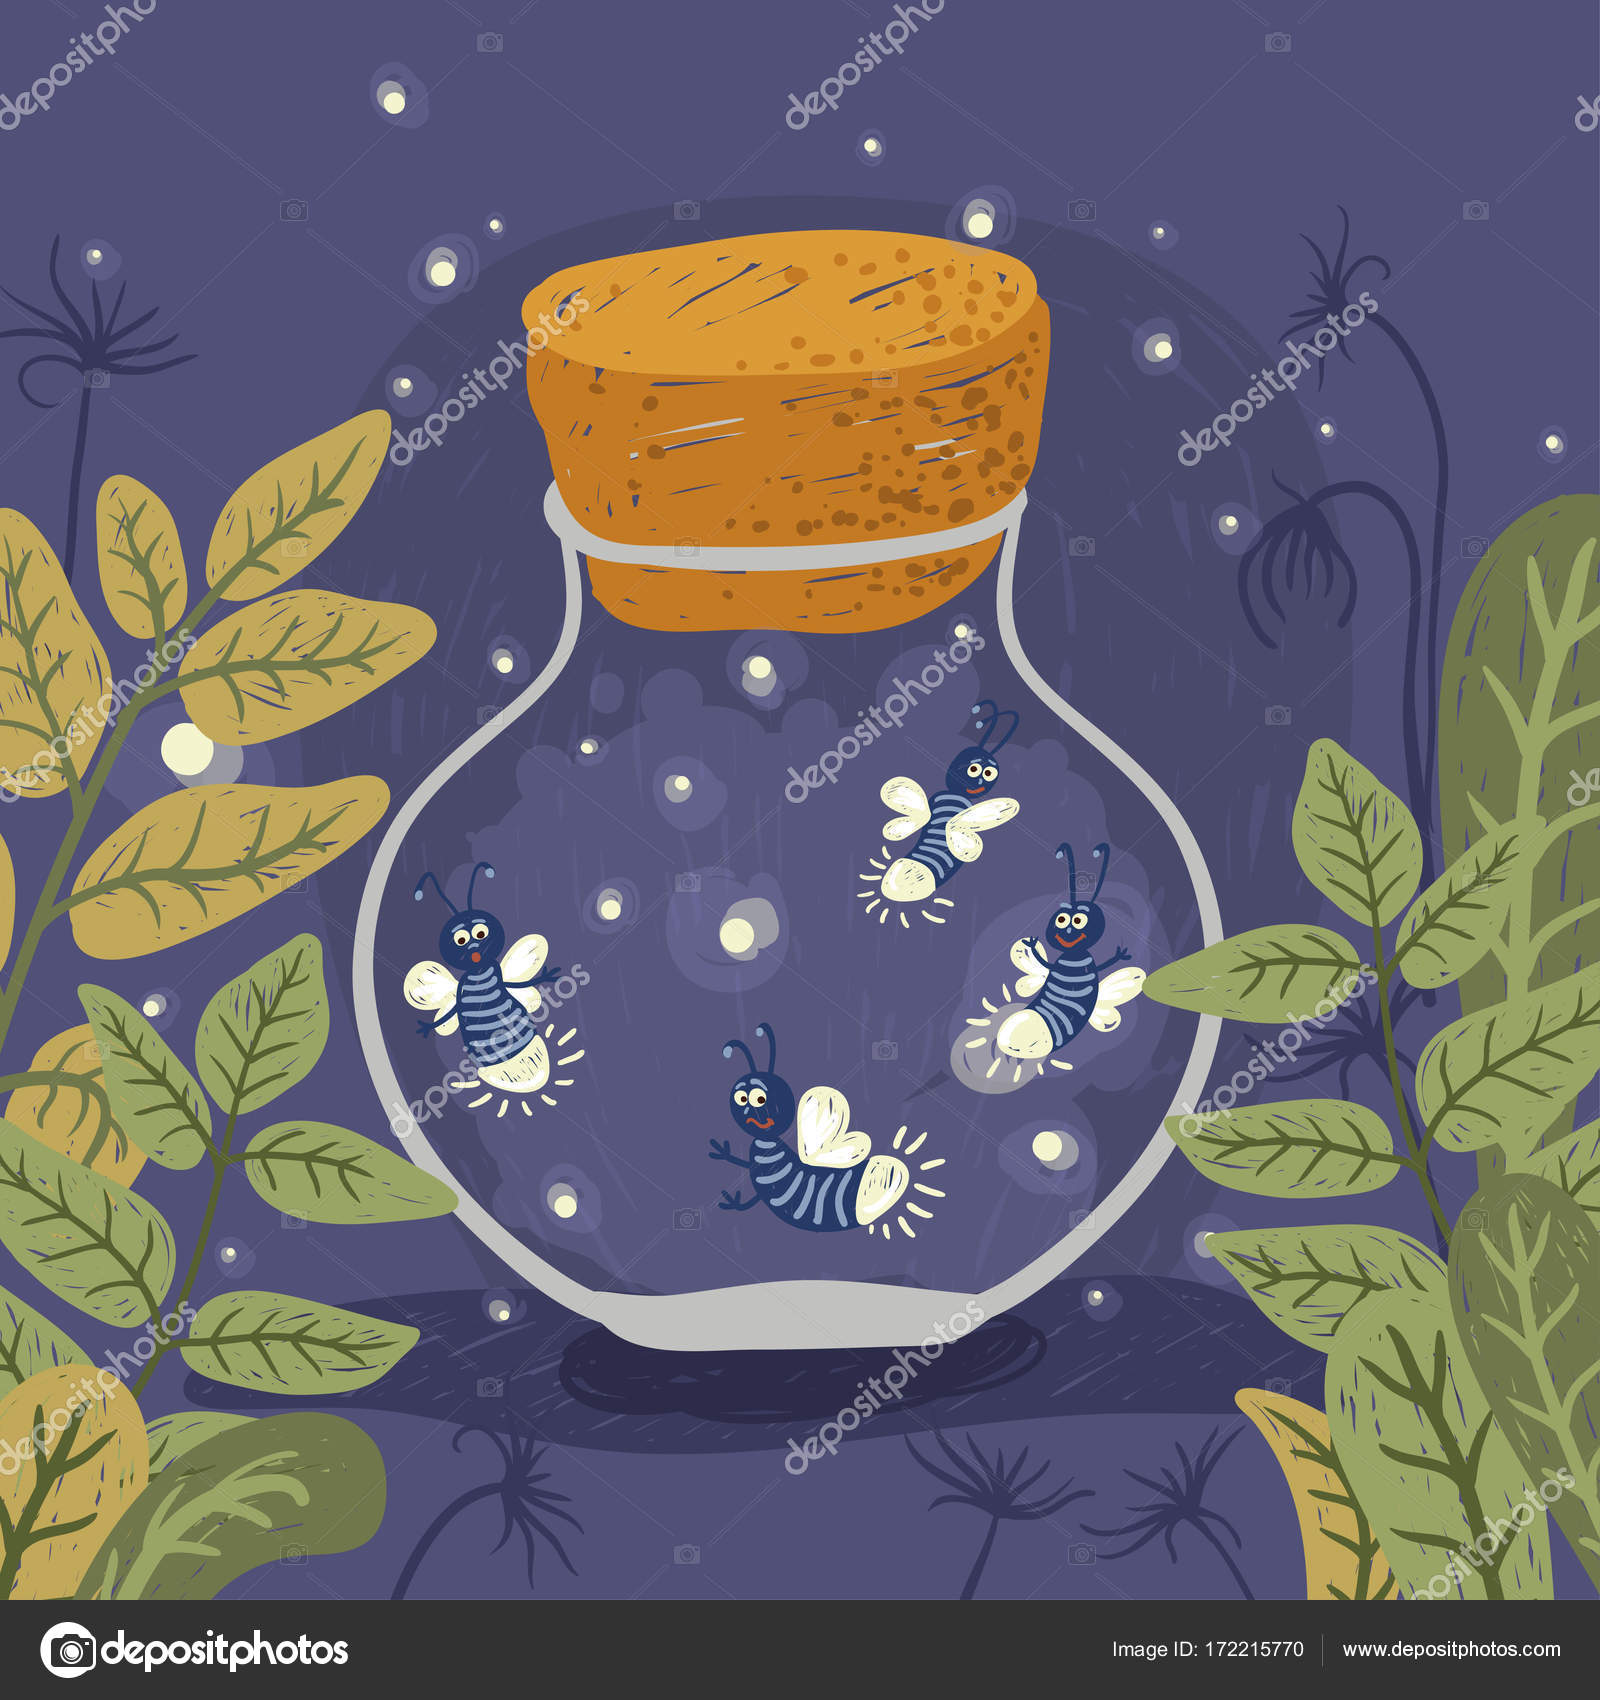 Firefly Jar Art Cartoon Firefly Jar Vector Illustration Stock Vector Aglia83